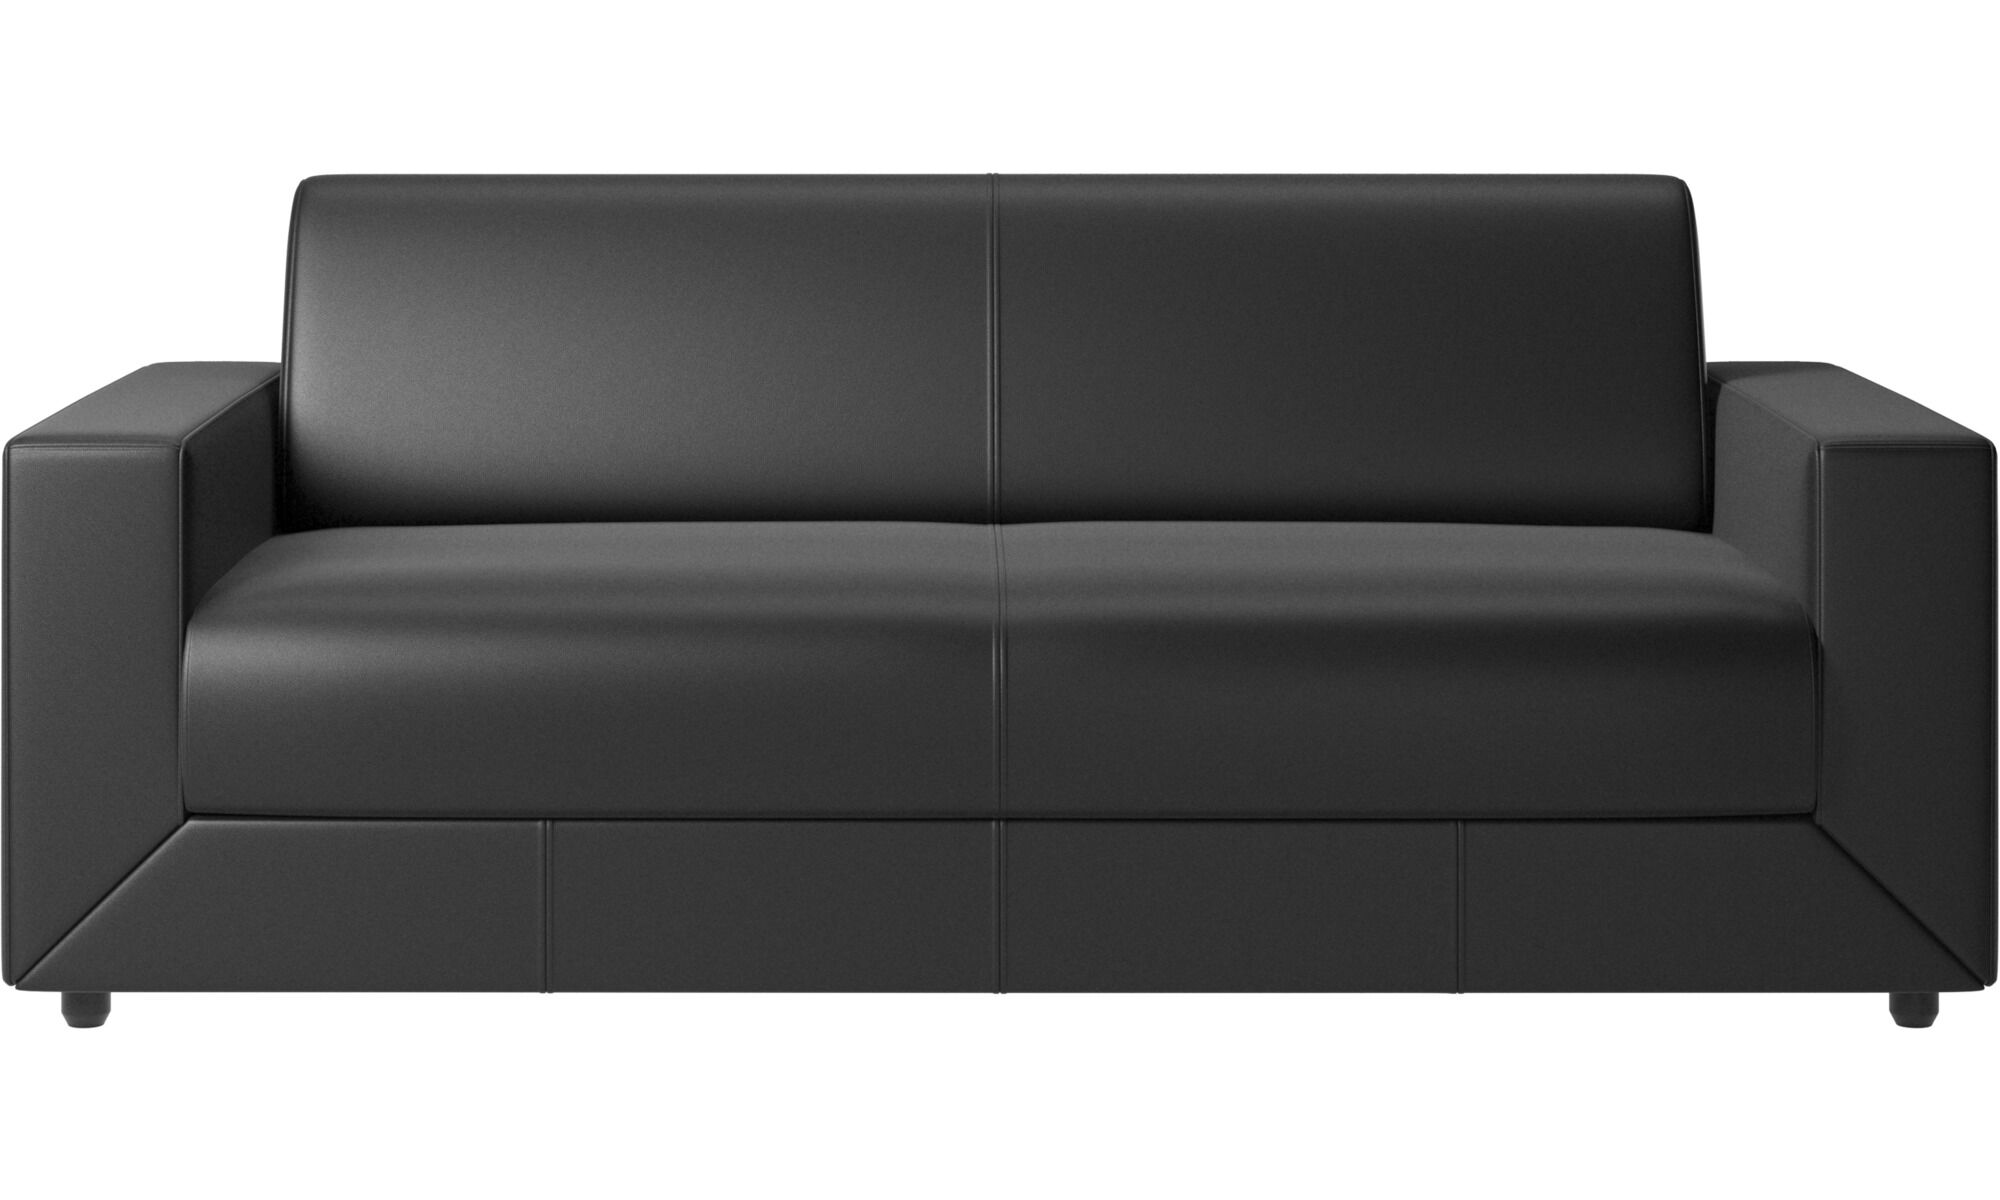 boconcept sleeper sofa review slipcover beds quality from stockholm bed black leather